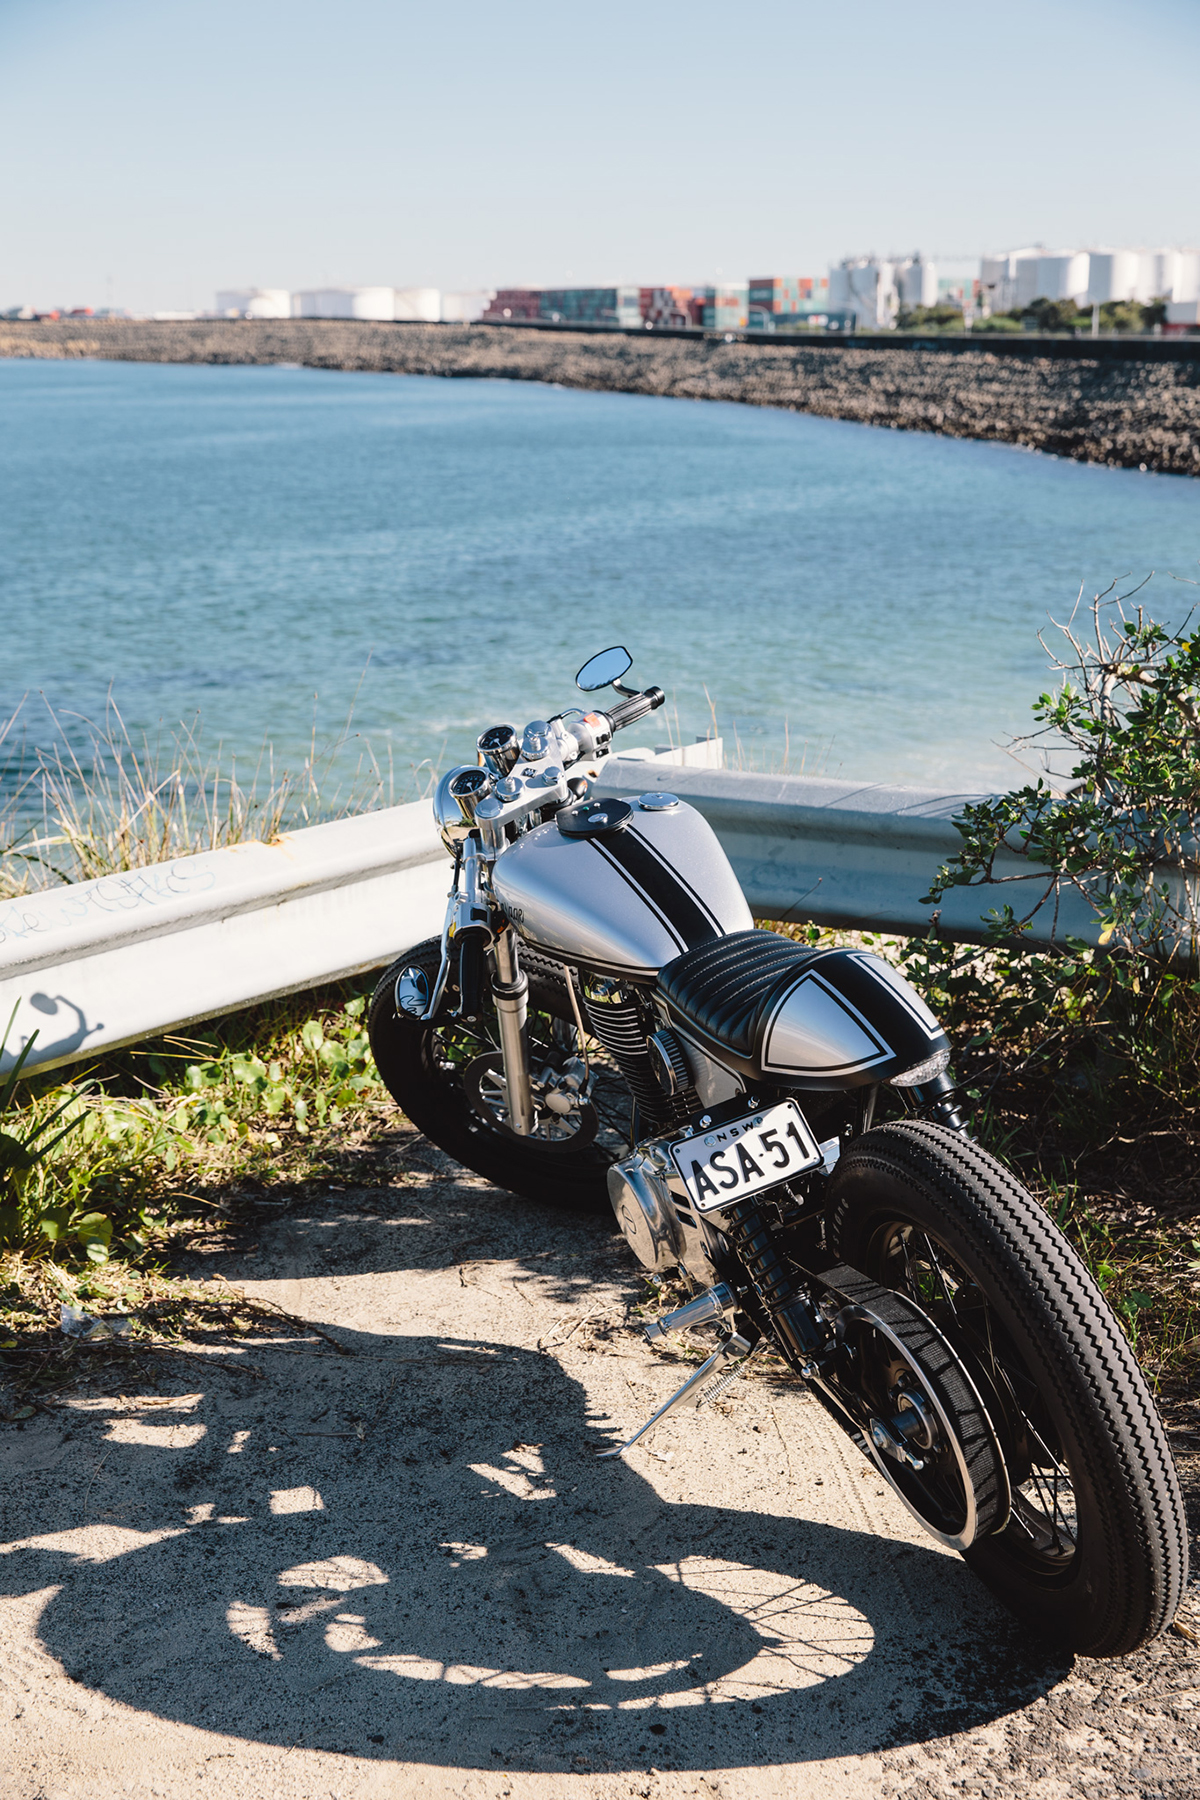 Suzuki_Savage_Cafe_Racer_Brat_8526